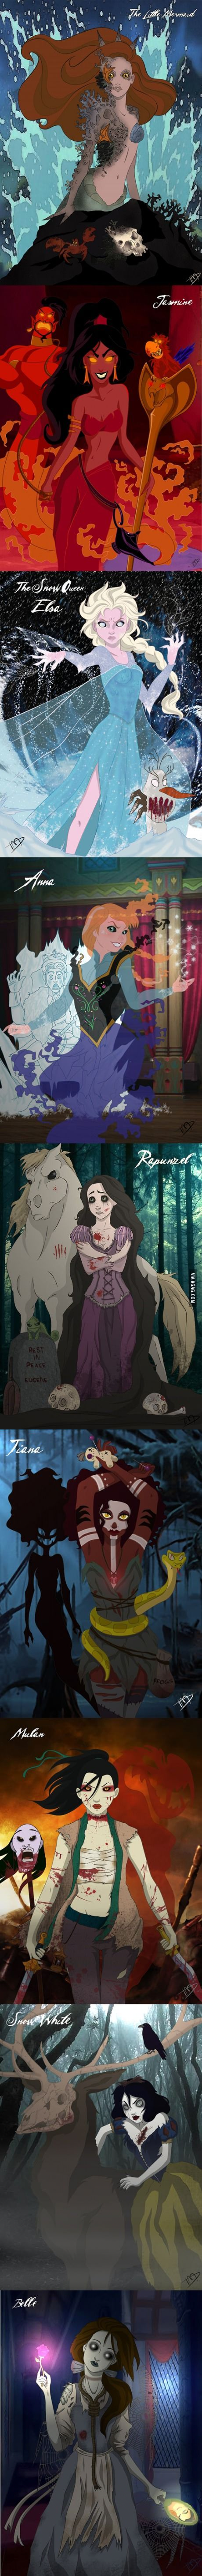 Zombie Disney Princesses  Not sure who the artist is but awesome work